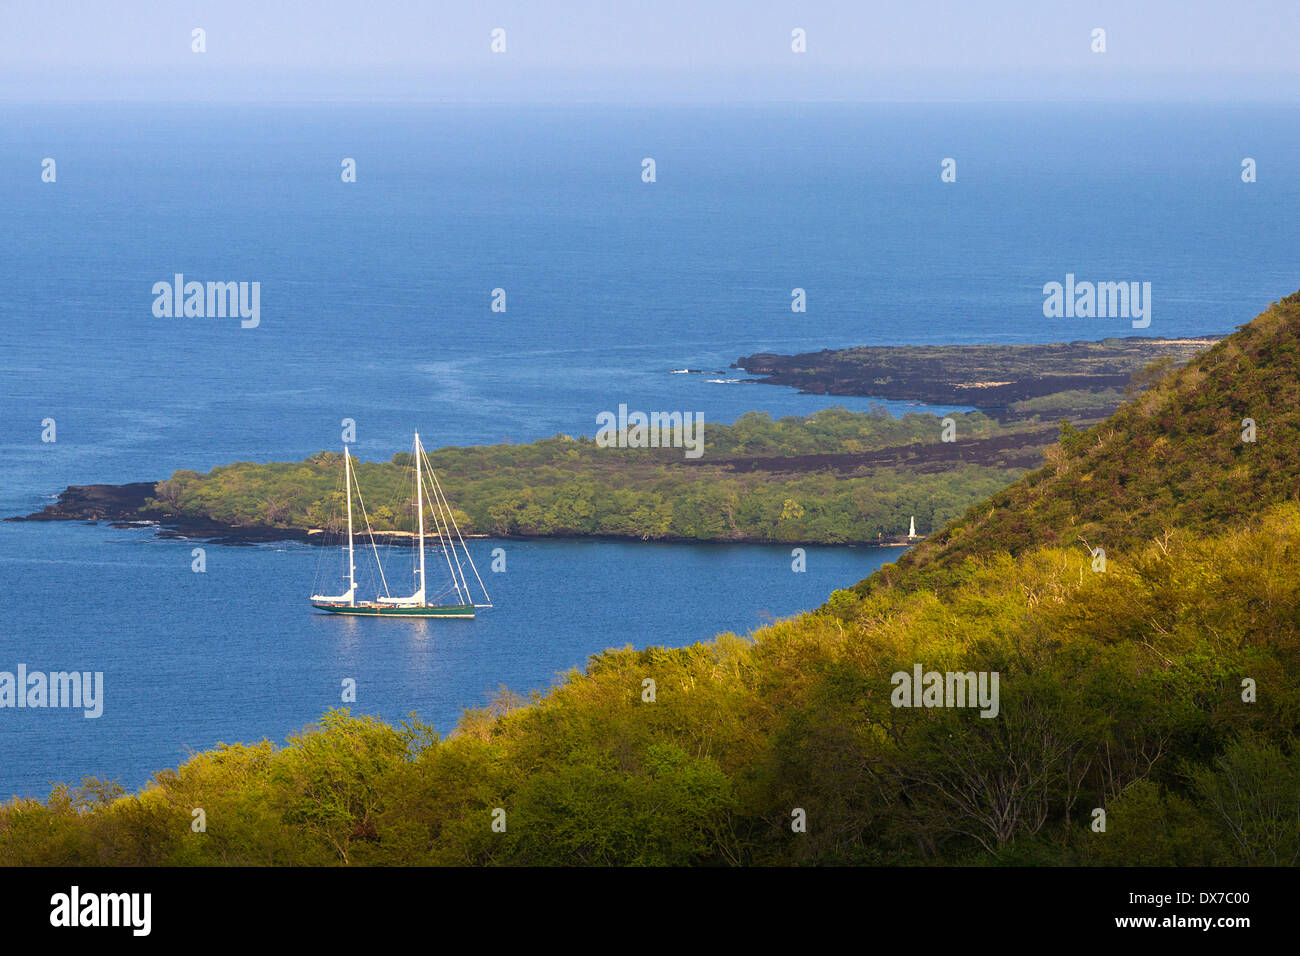 Private yacht moored in Kealakekua Bay, Hawaii with Cook Monument visible on right. - Stock Image